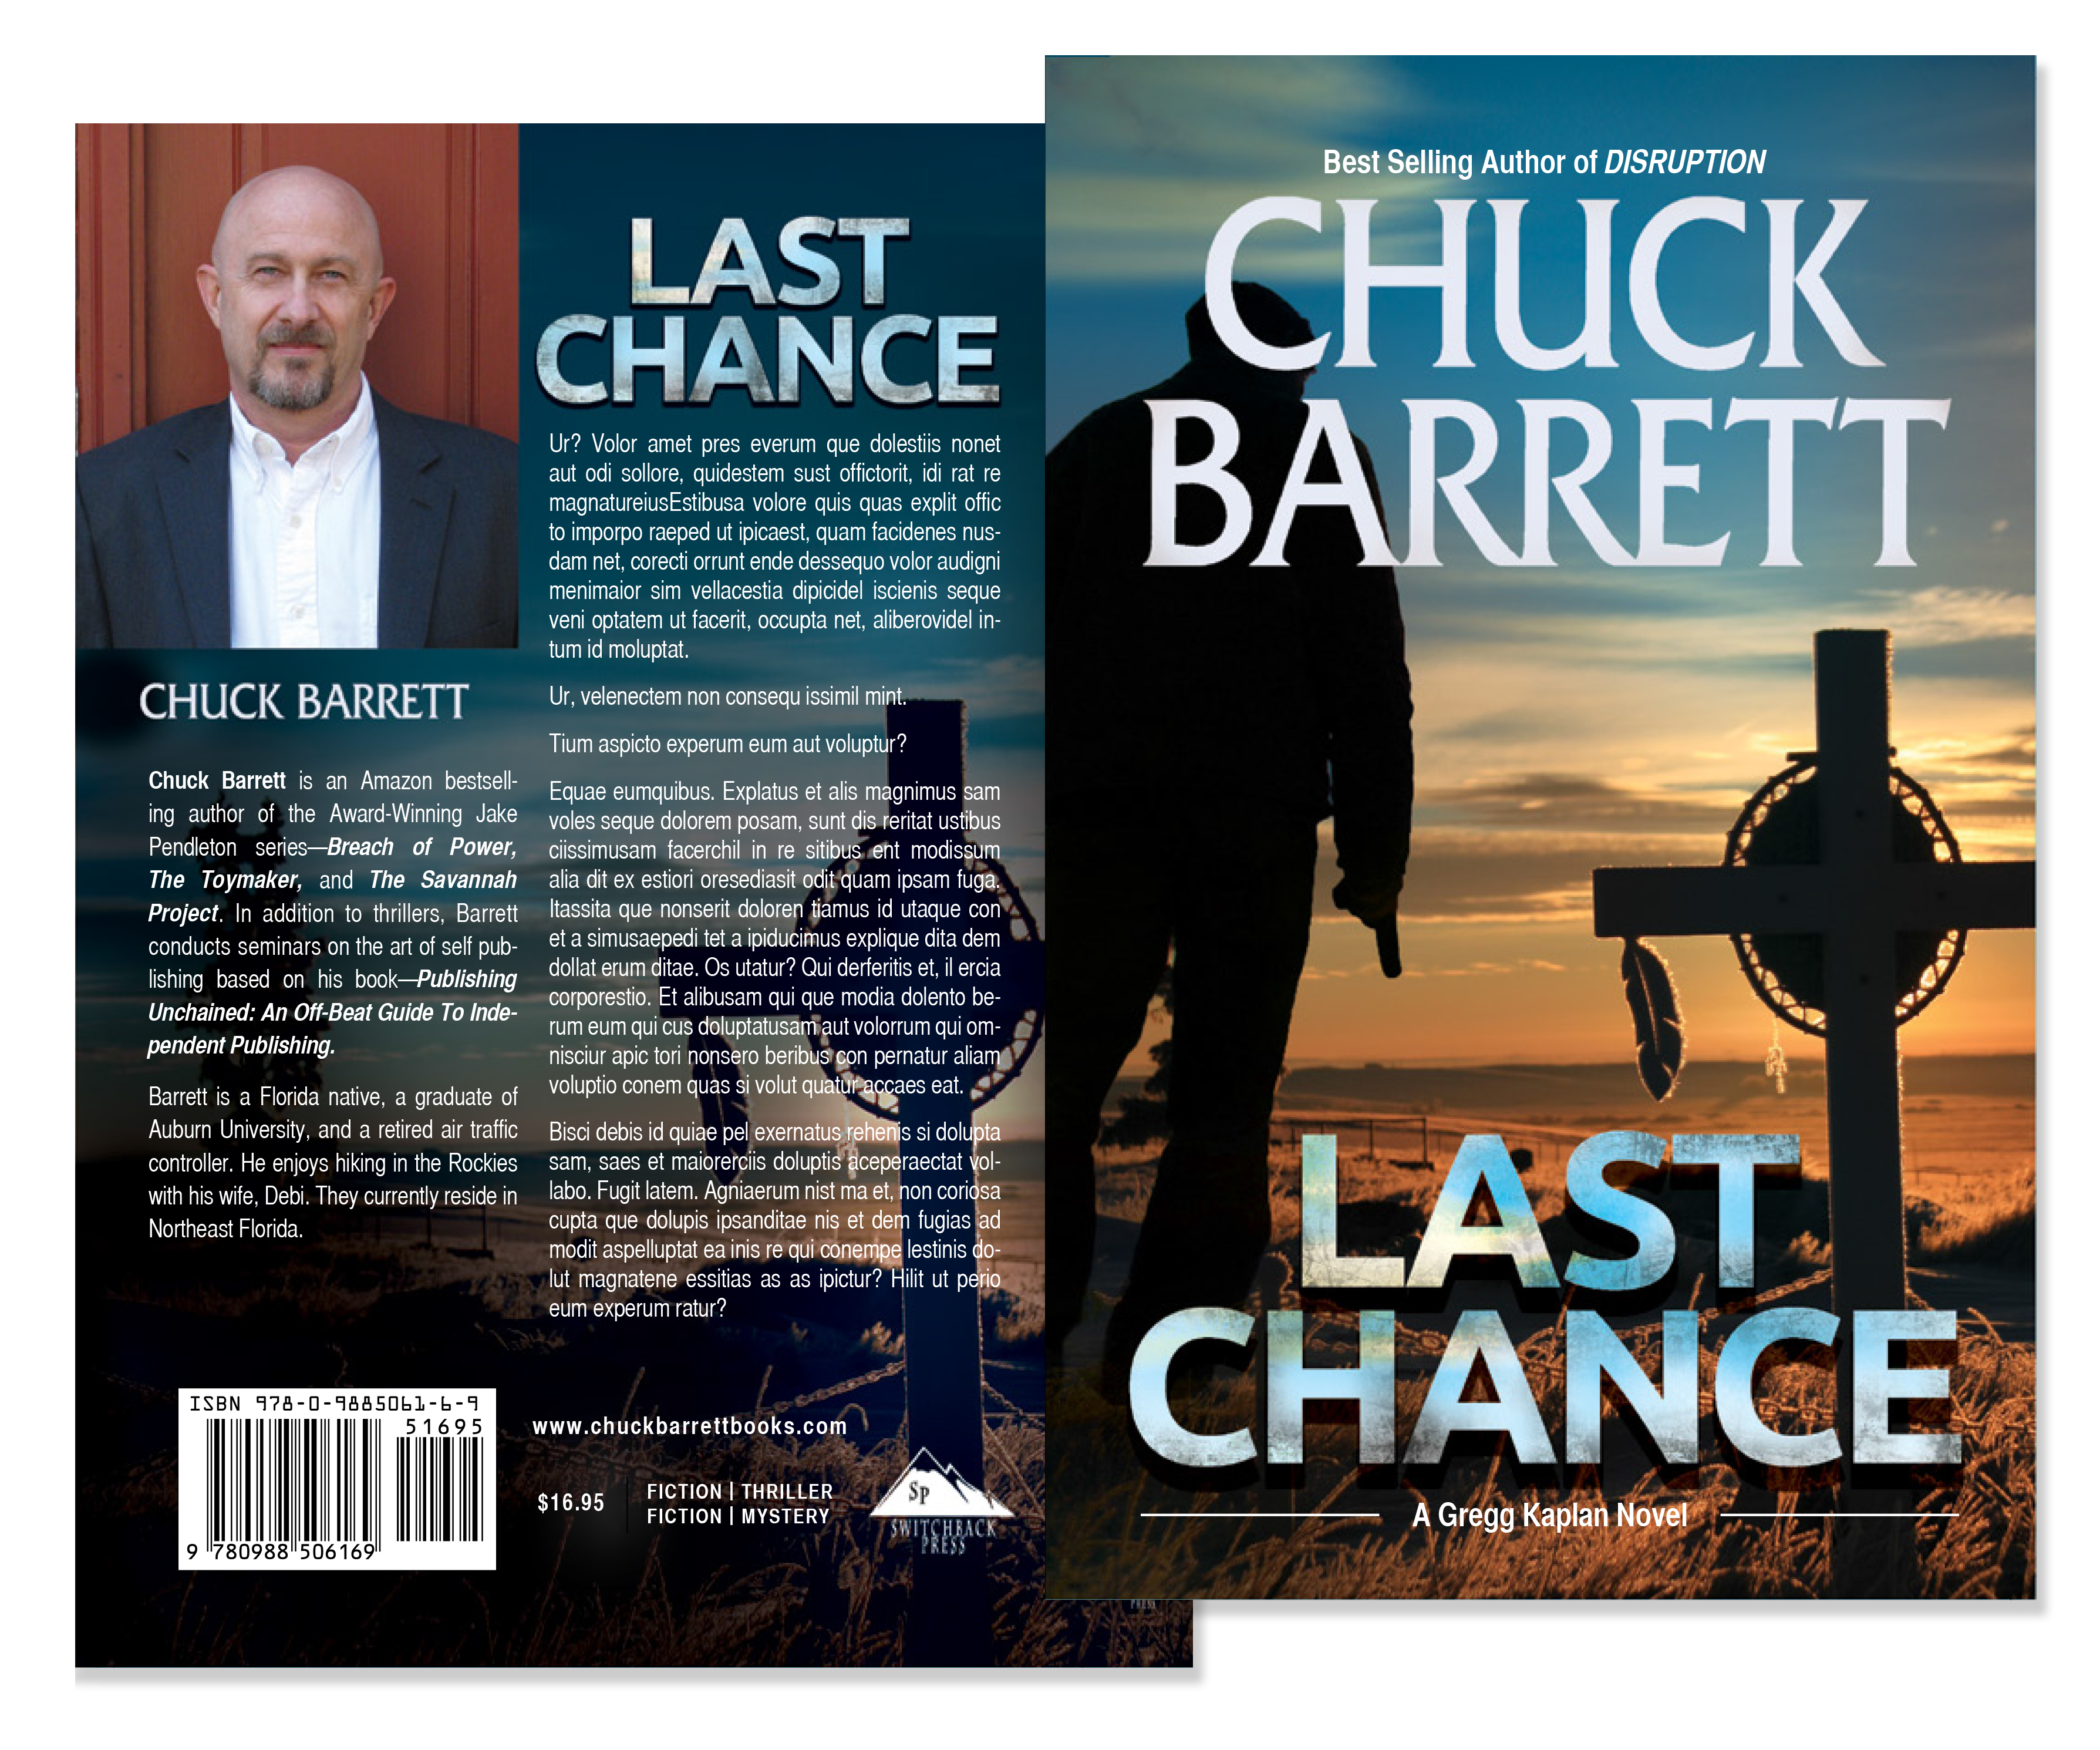 last chance chuck barrett book cover design